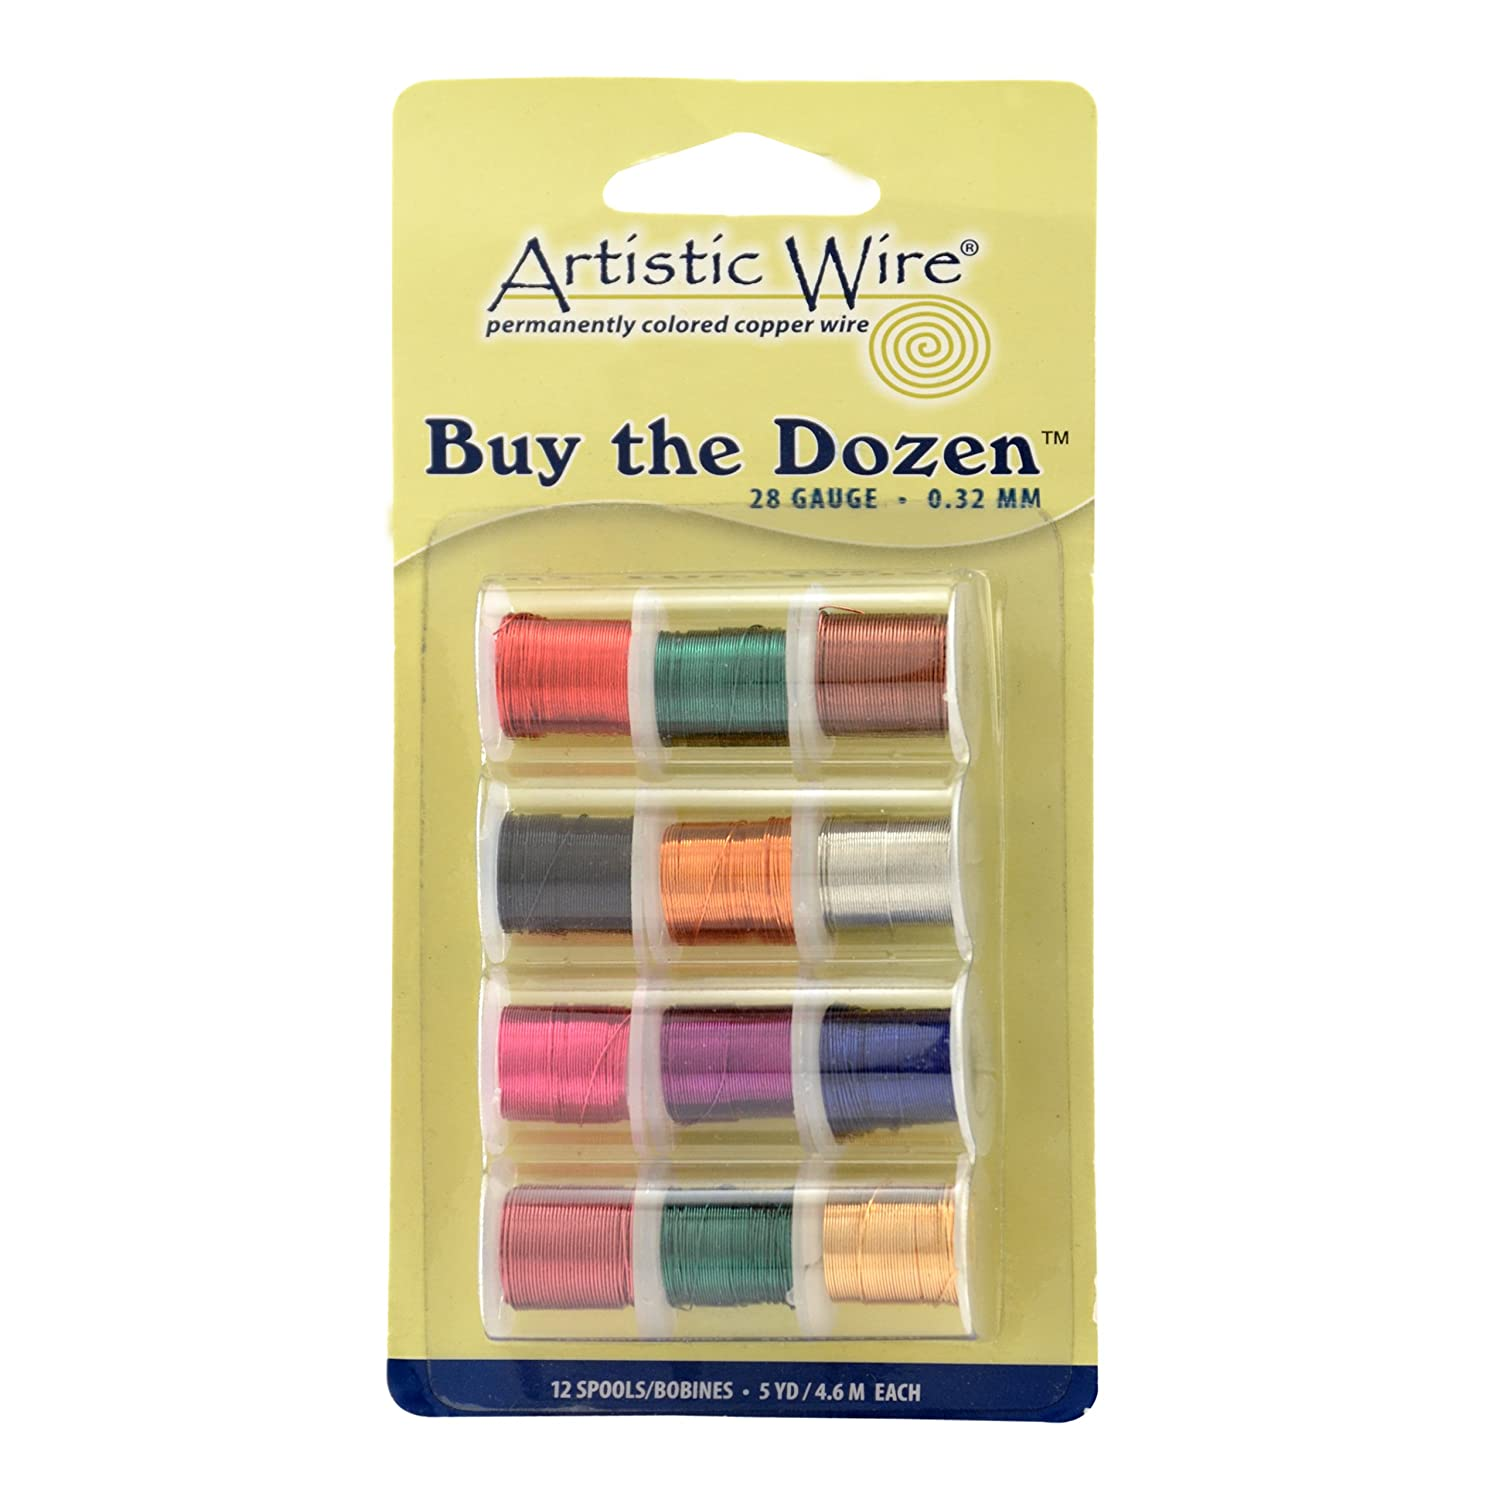 Amazon artistic wire 28 gauge buy the dozen various colors 12 amazon artistic wire 28 gauge buy the dozen various colors 12 pack greentooth Images